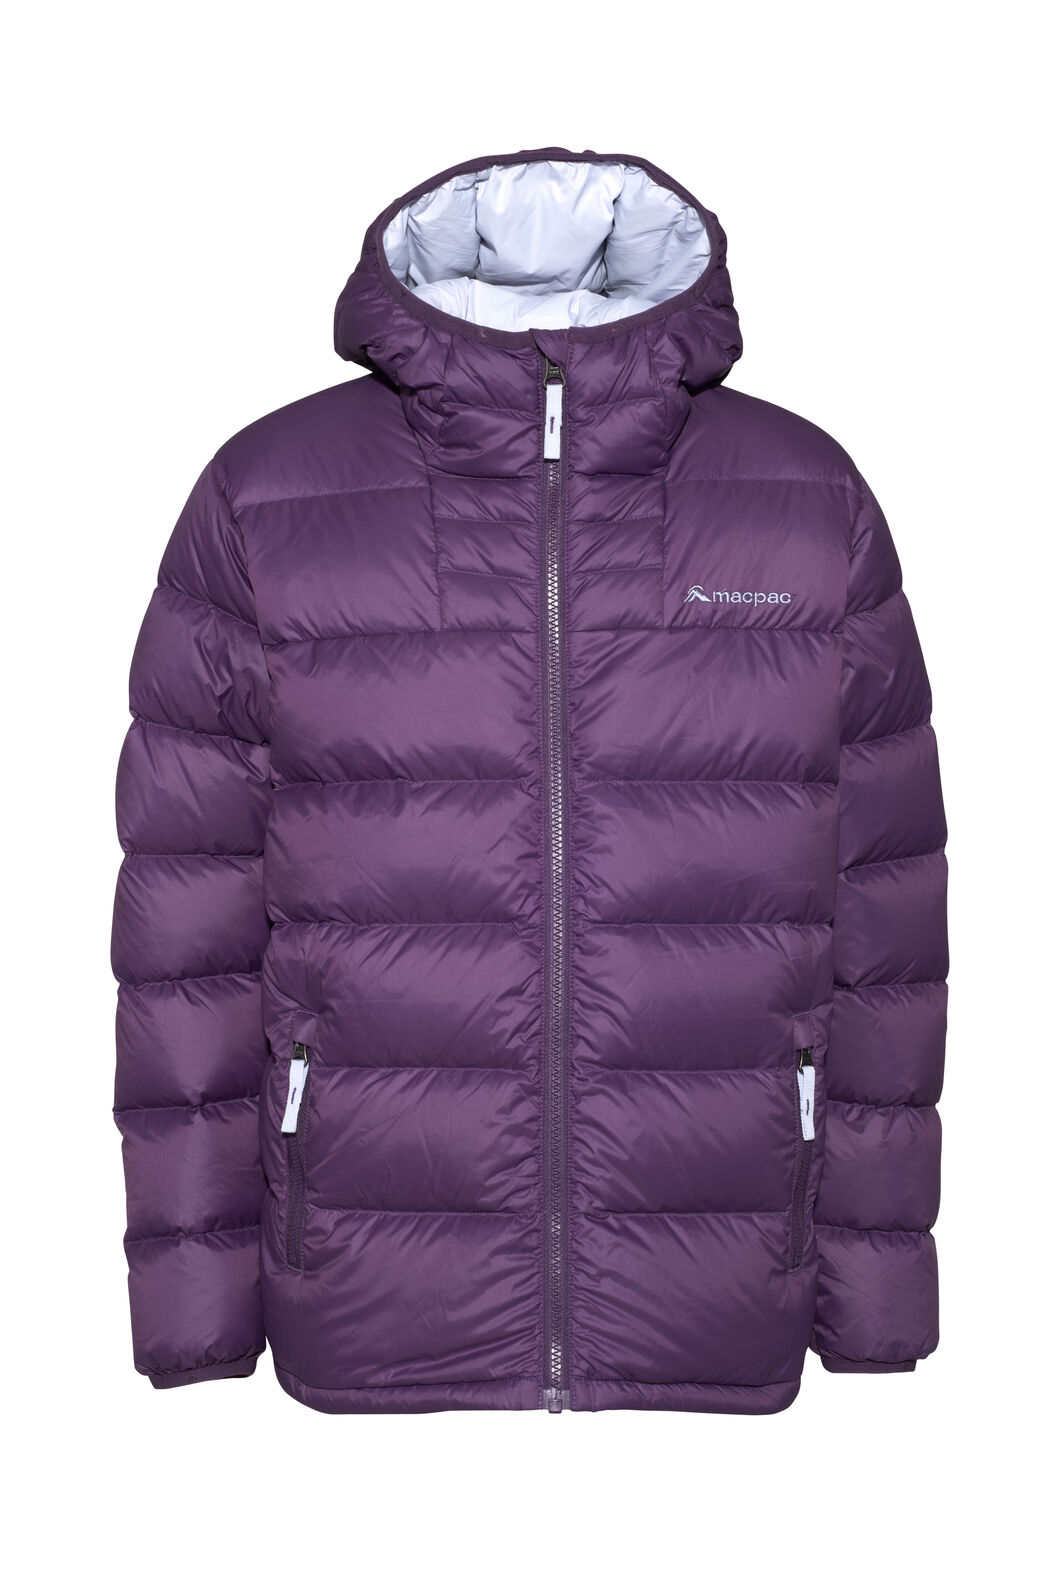 Macpac Atom Hooded Down Jacket — Kids', Wineberry, hi-res